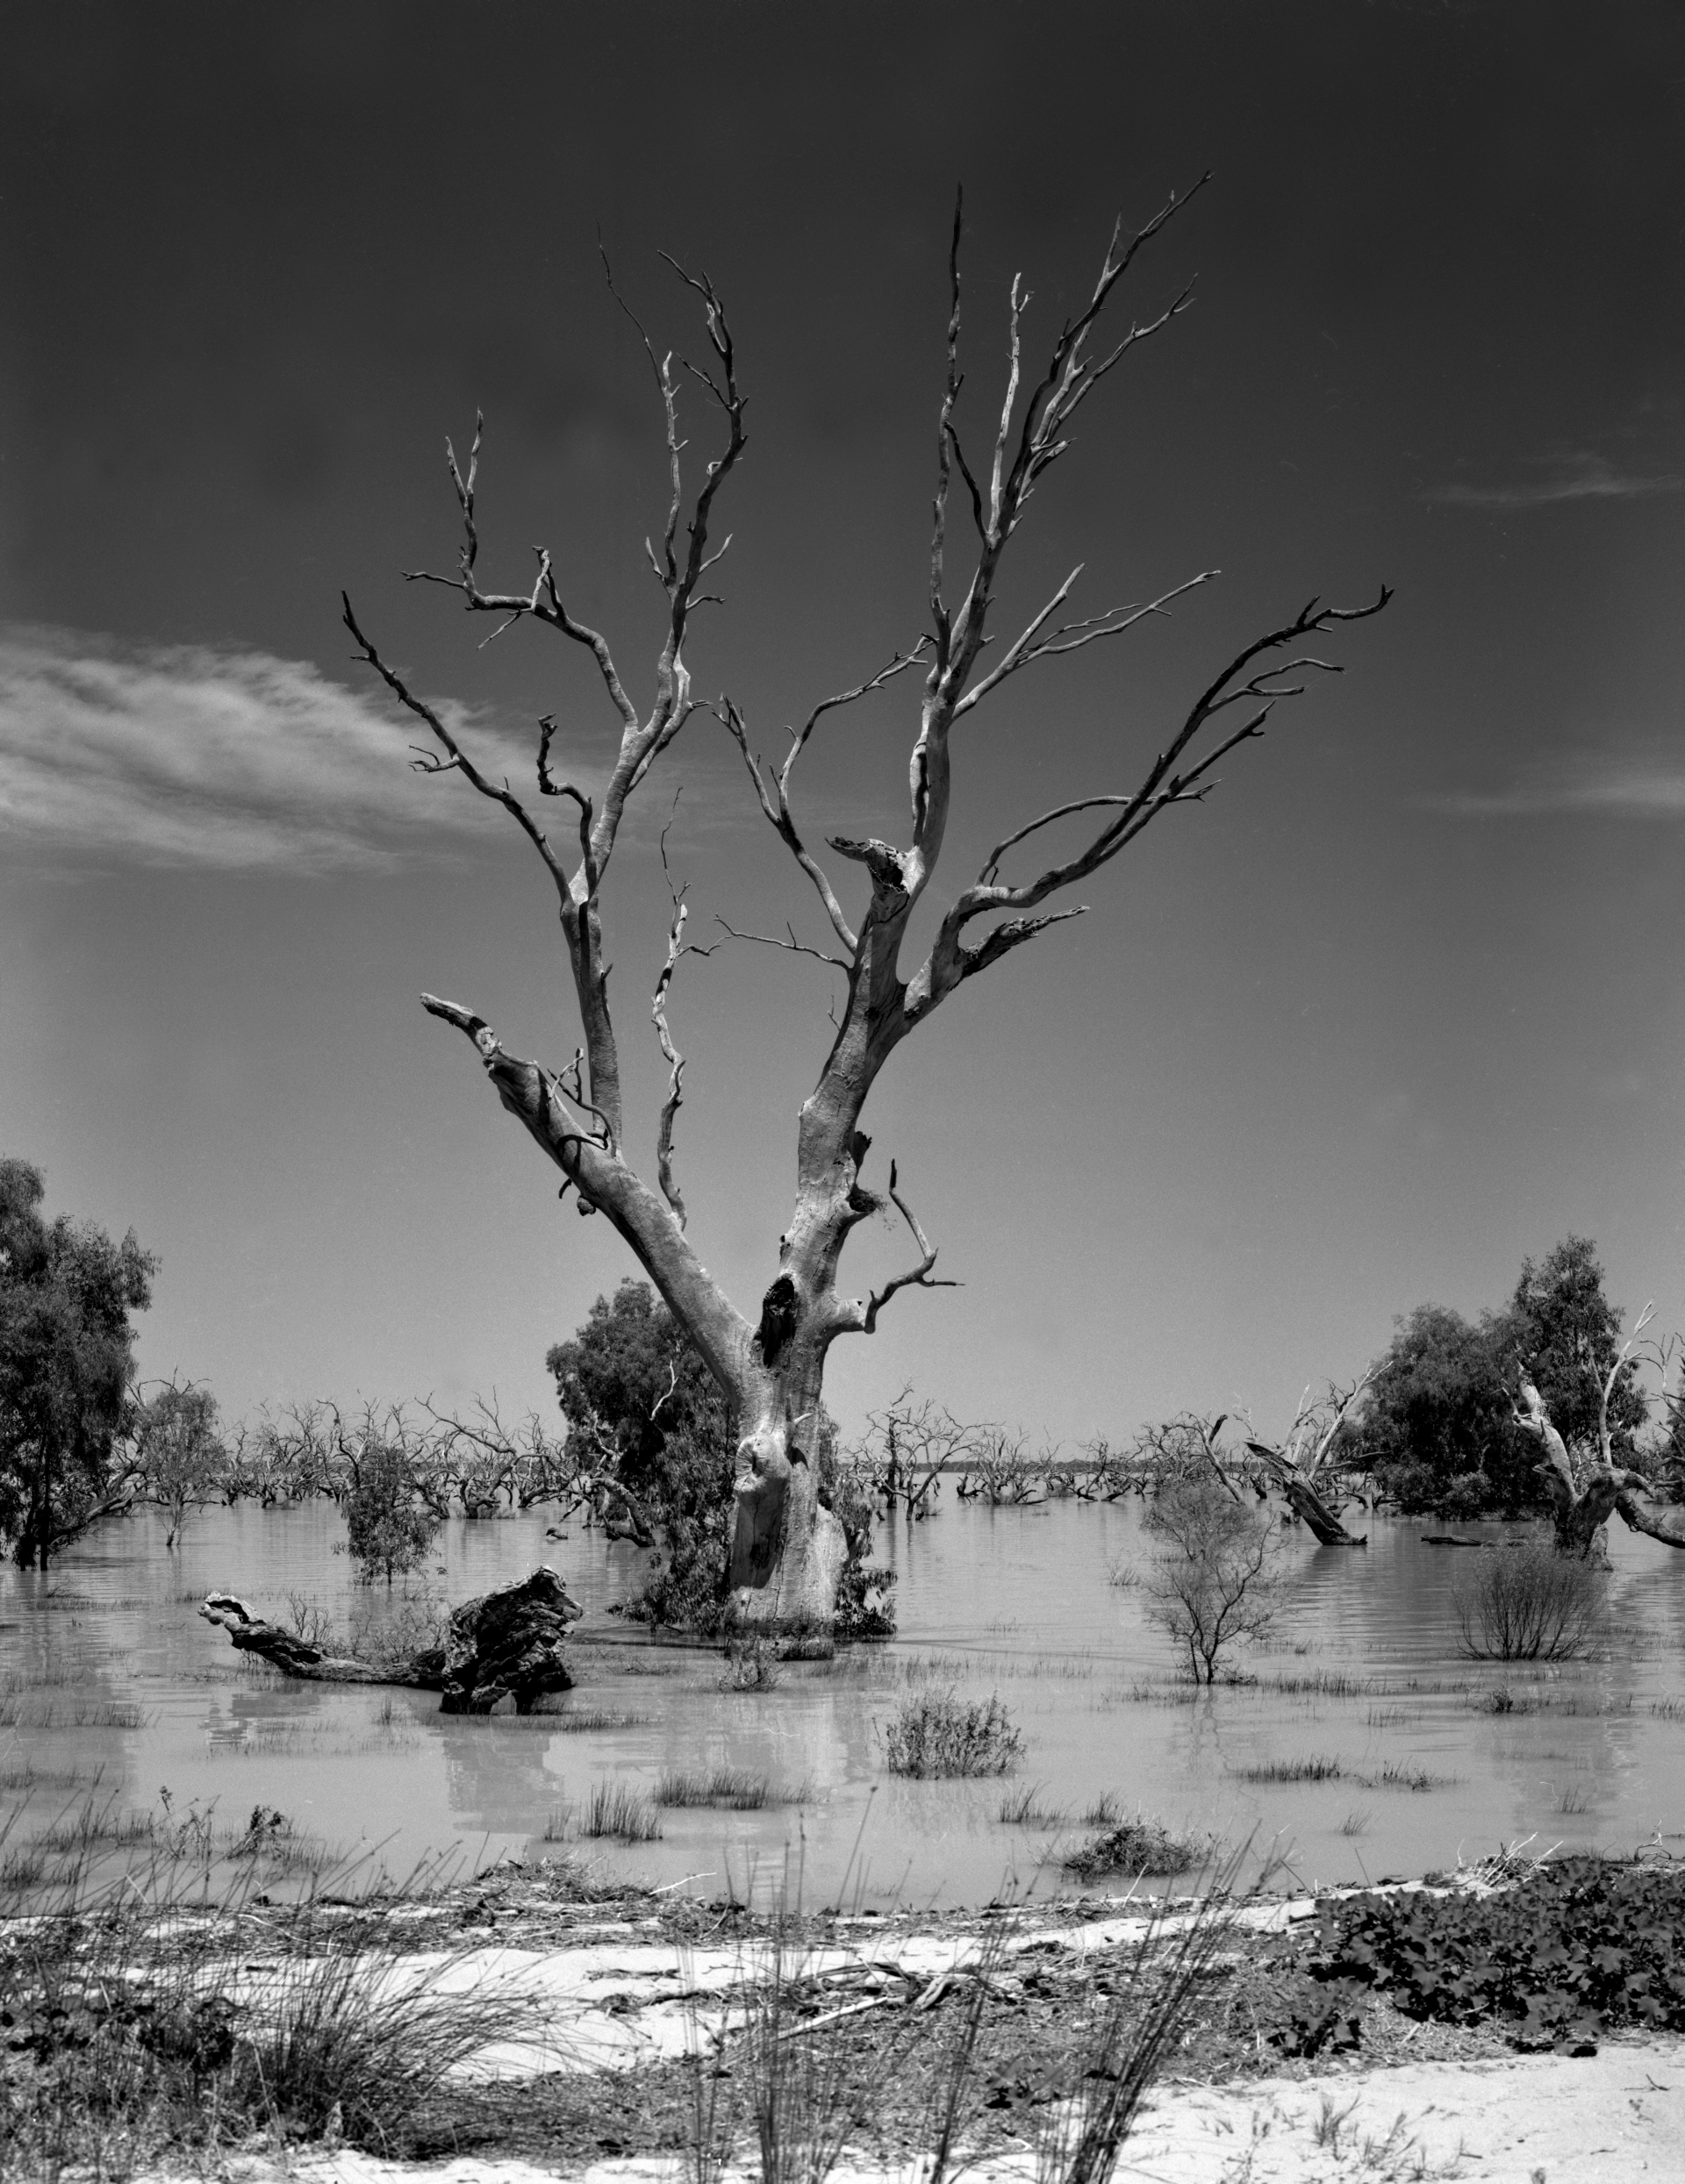 4x5_Lake_Cawndilla_Kinchega_NP_2011_002_Finished_150_Polariser_FP4_22mm_Rise_Drowned_Tree_web.jpg